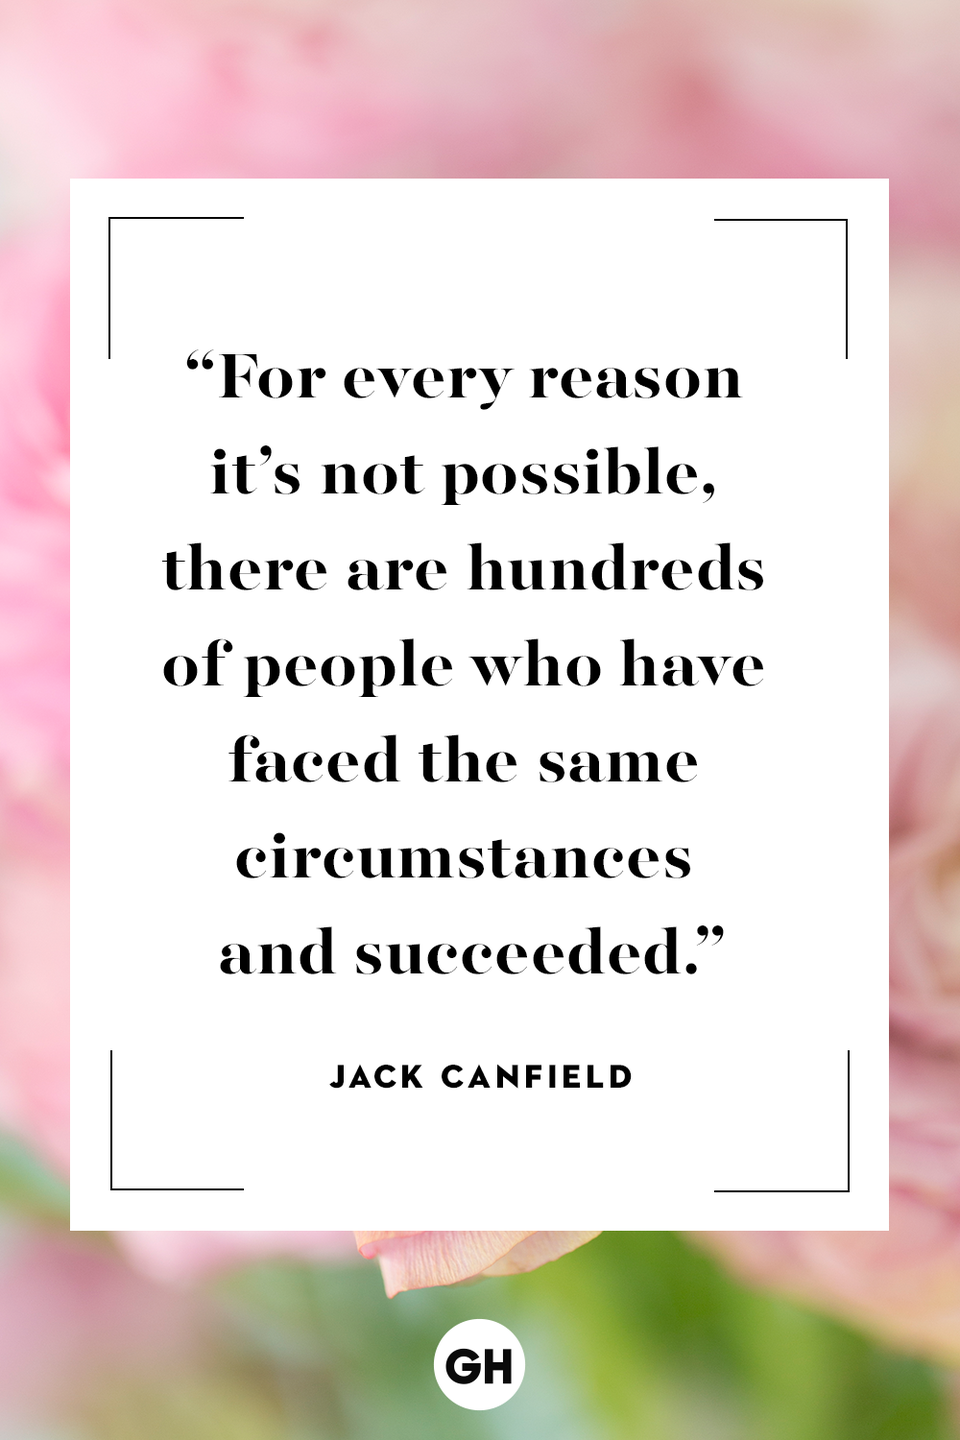 <p>For every reason it's not possible, there are hundreds of people who have faced the same circumstances and succeeded.</p>